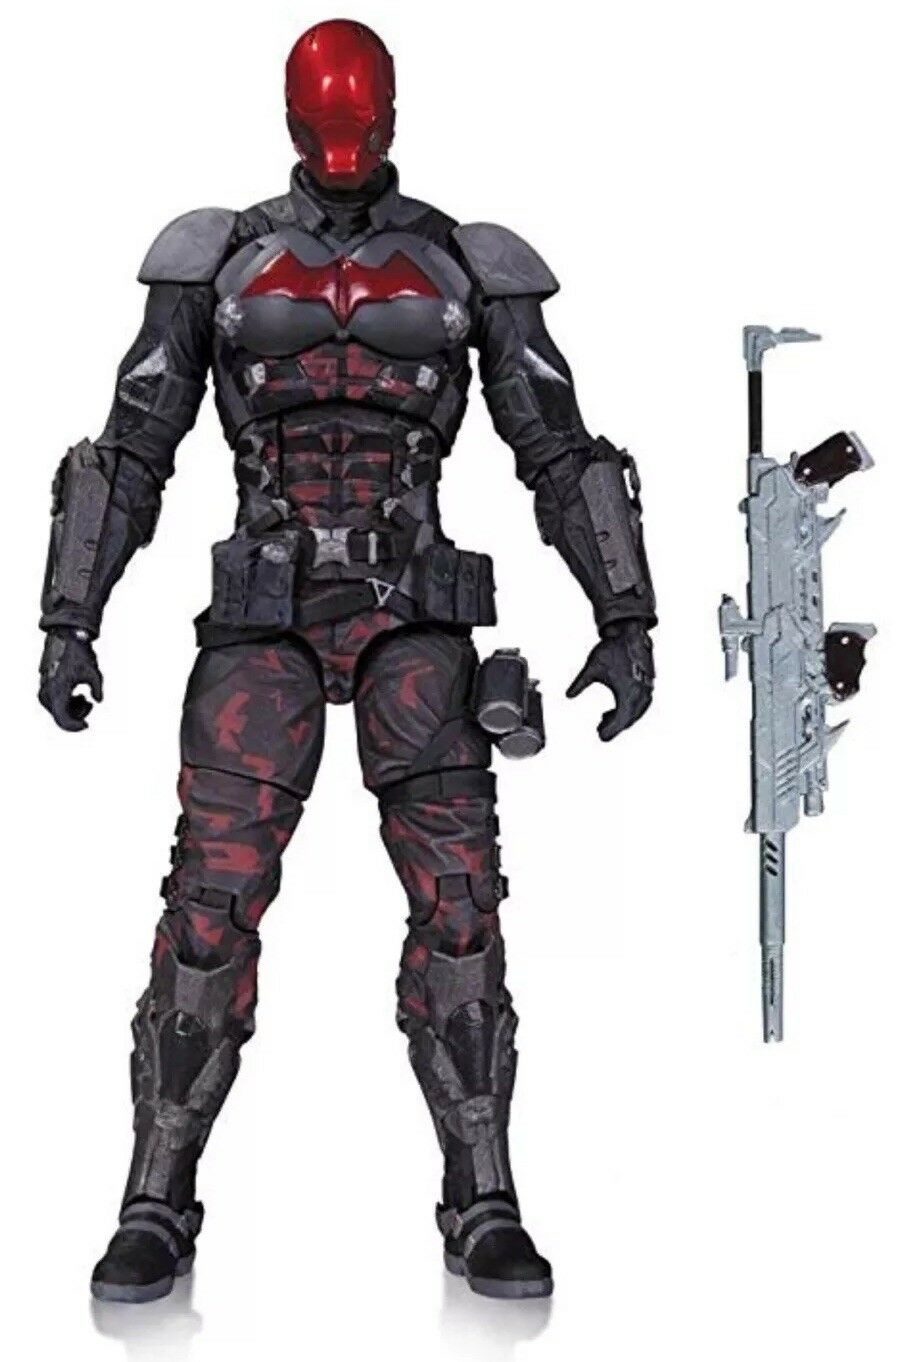 DC COLLECTIBLES BATMAN ARKHAM KNIGHT rosso HOOD SERIES 12